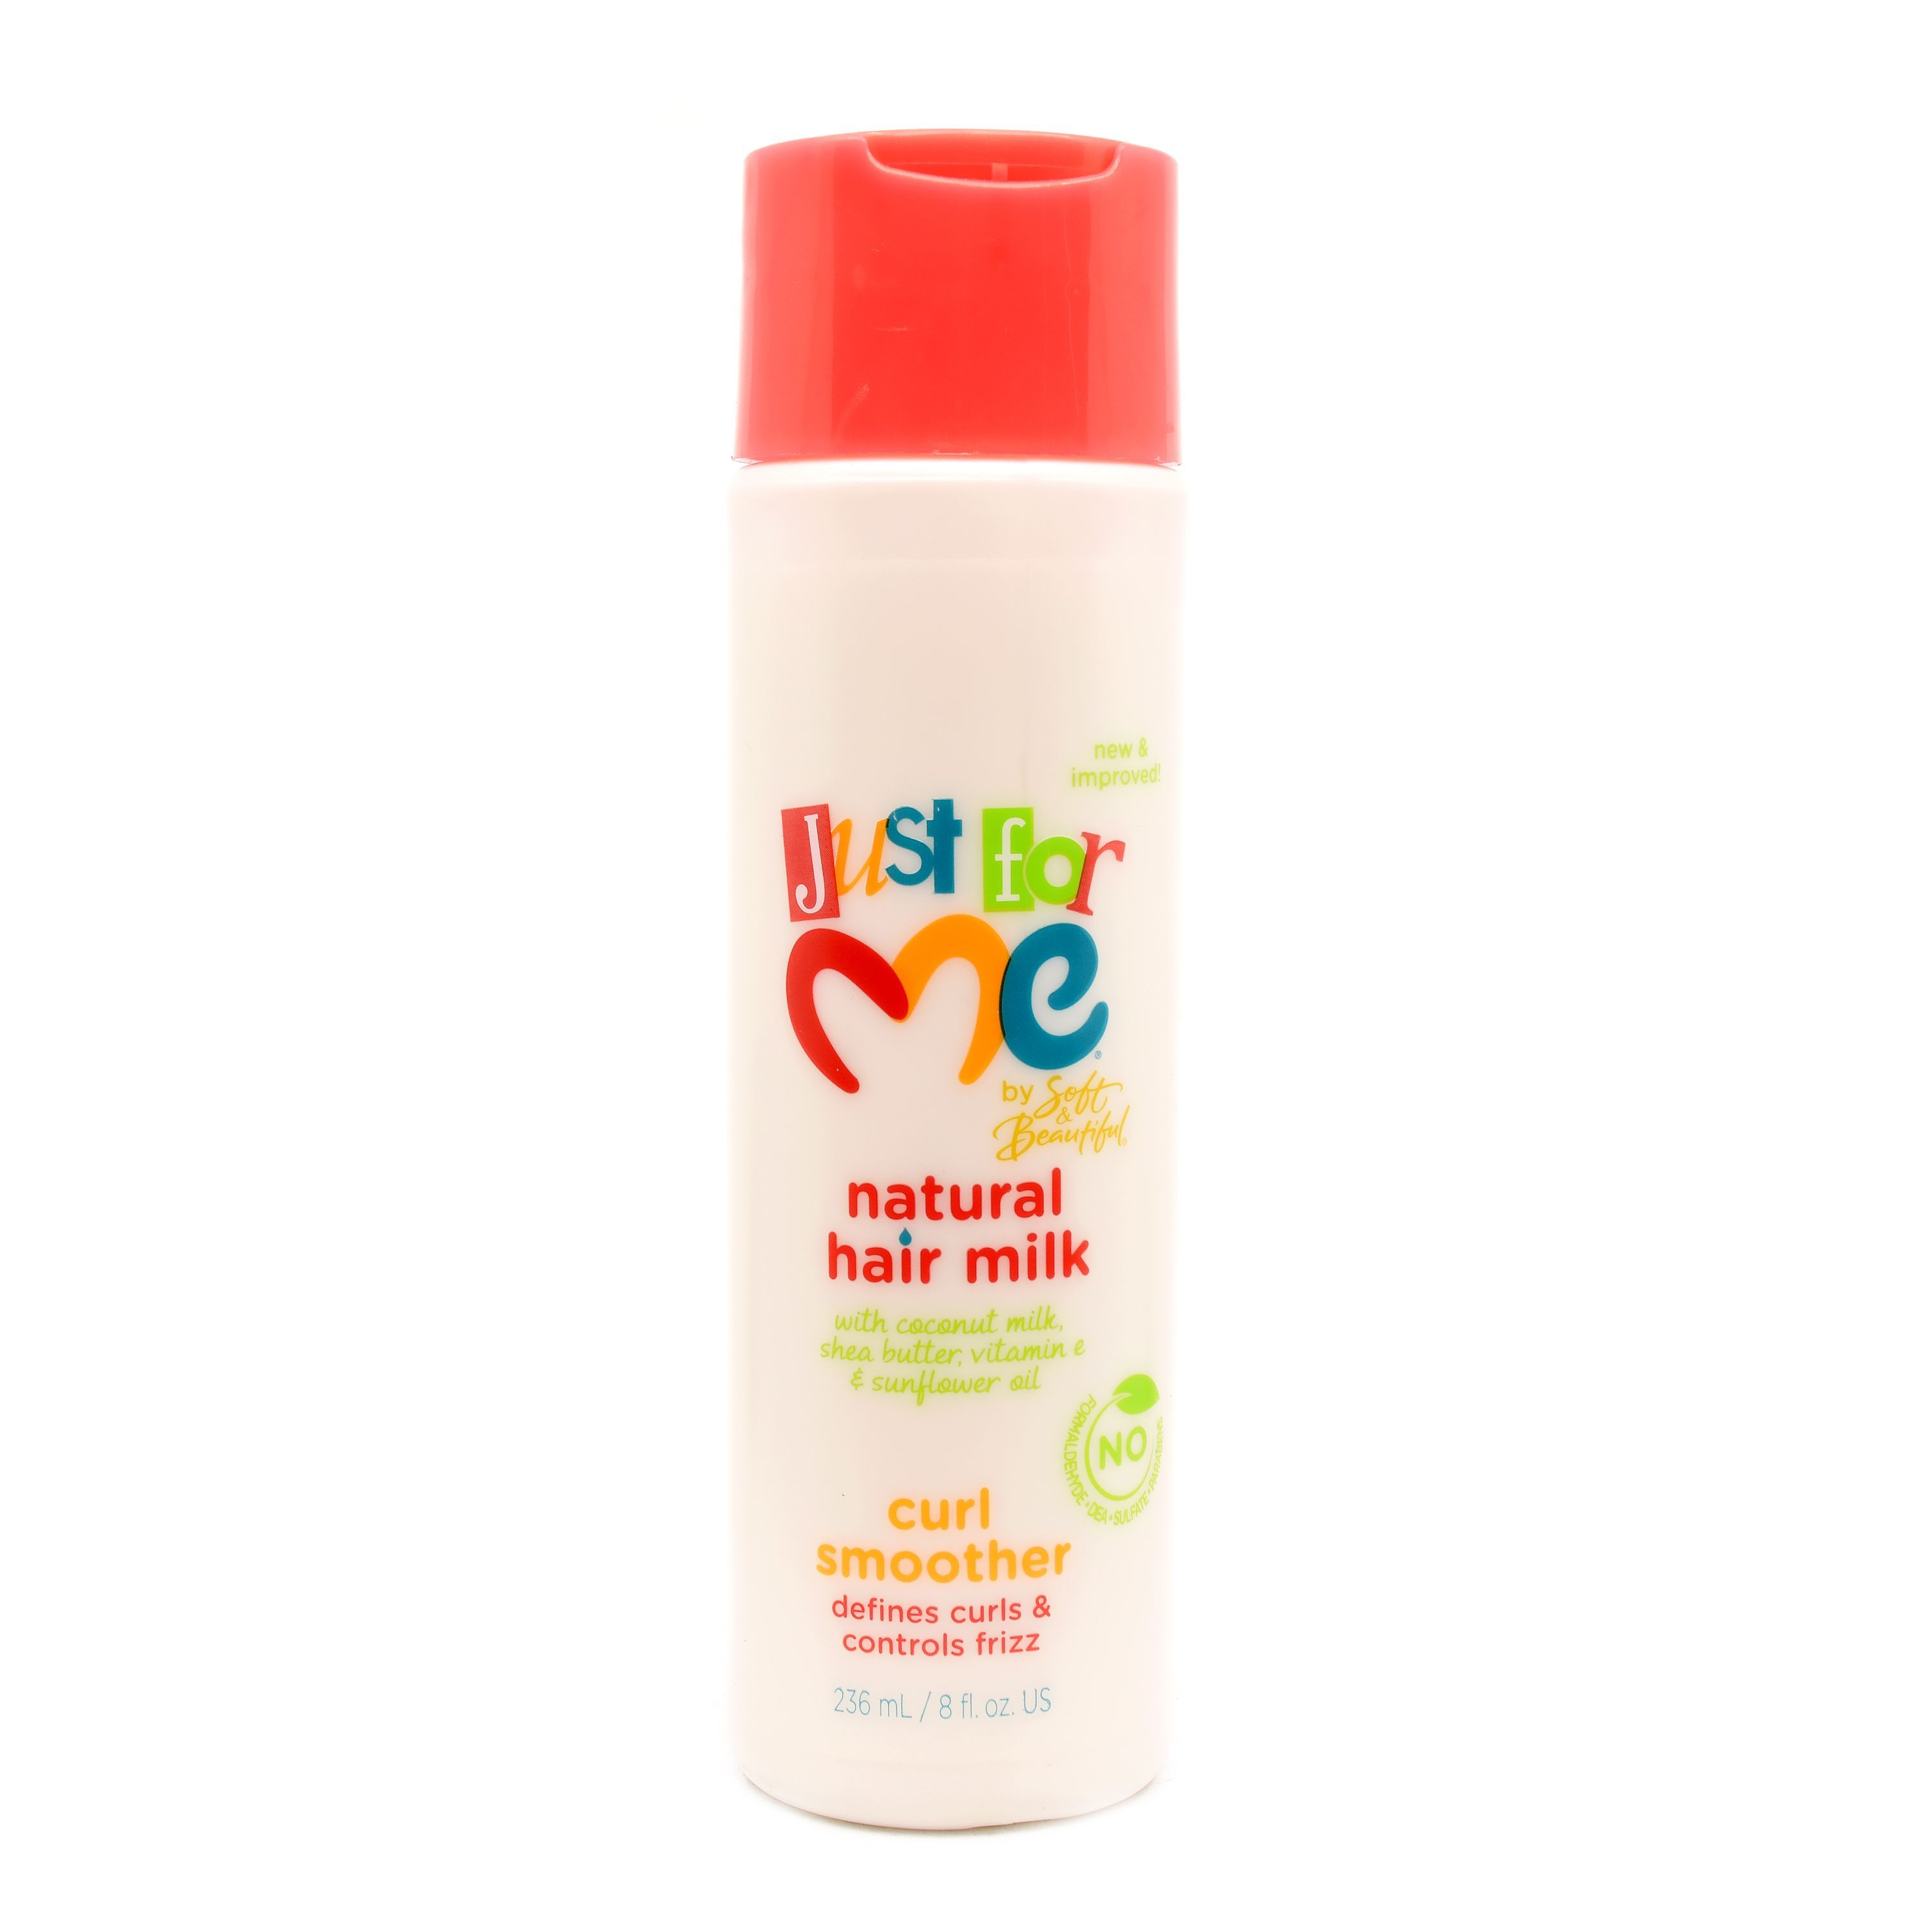 Just For Me Hair Milk Curl Smoother - 236ml